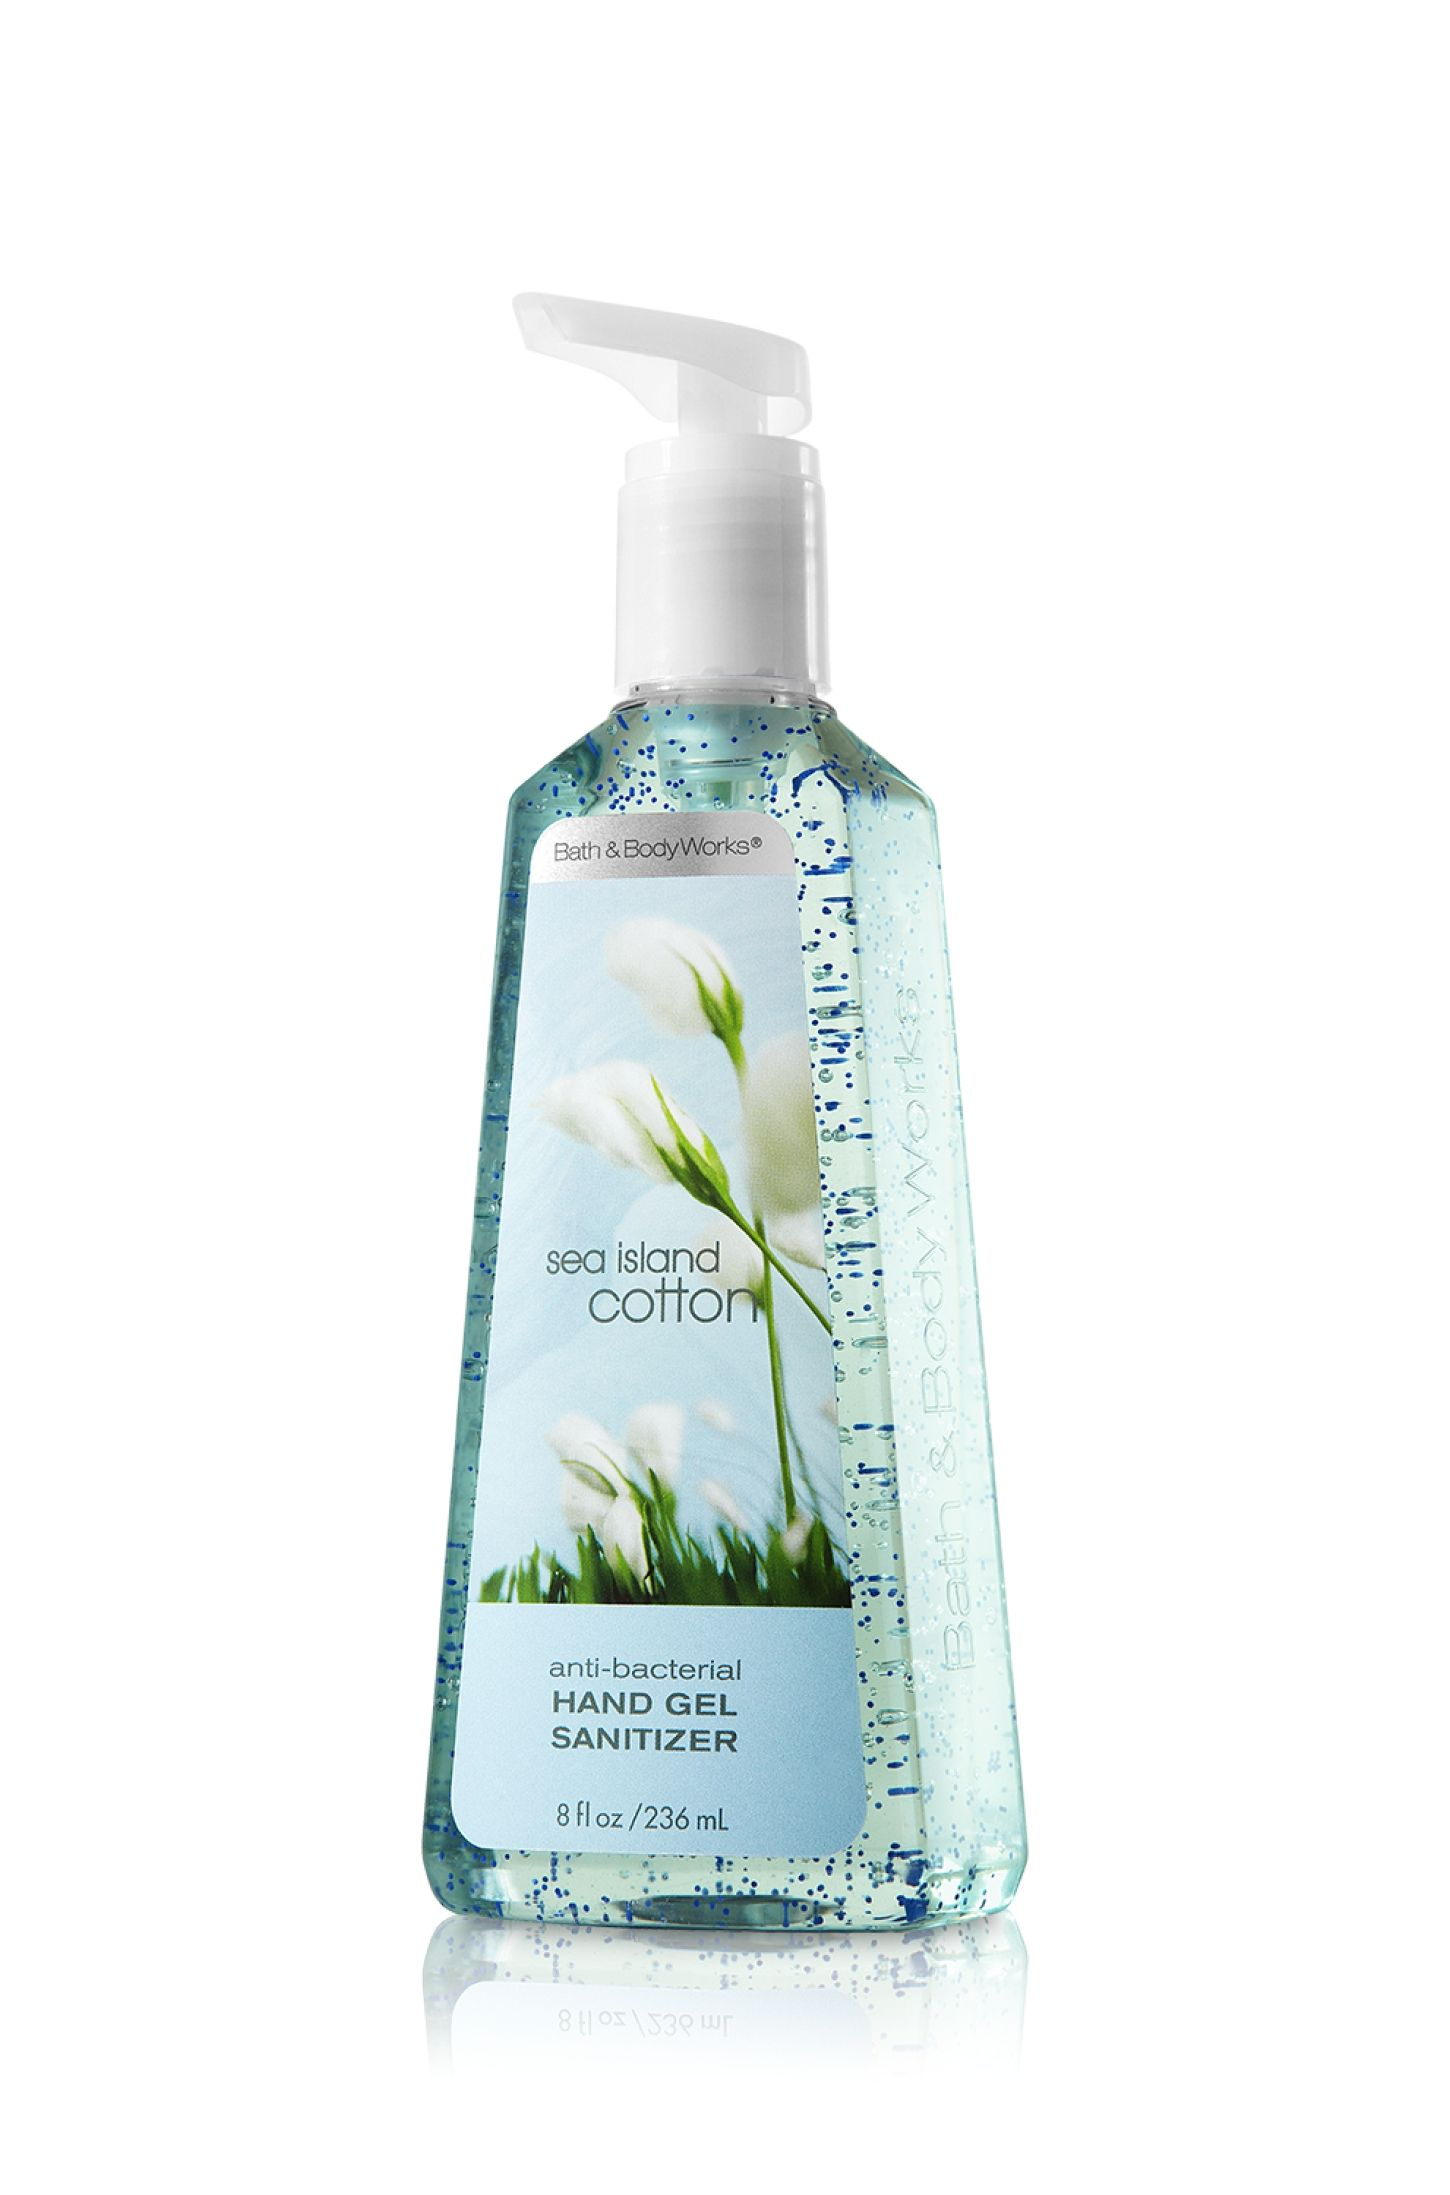 Sea Island Cotton Sanitizing Hand Gel Anti Bacterial Bath